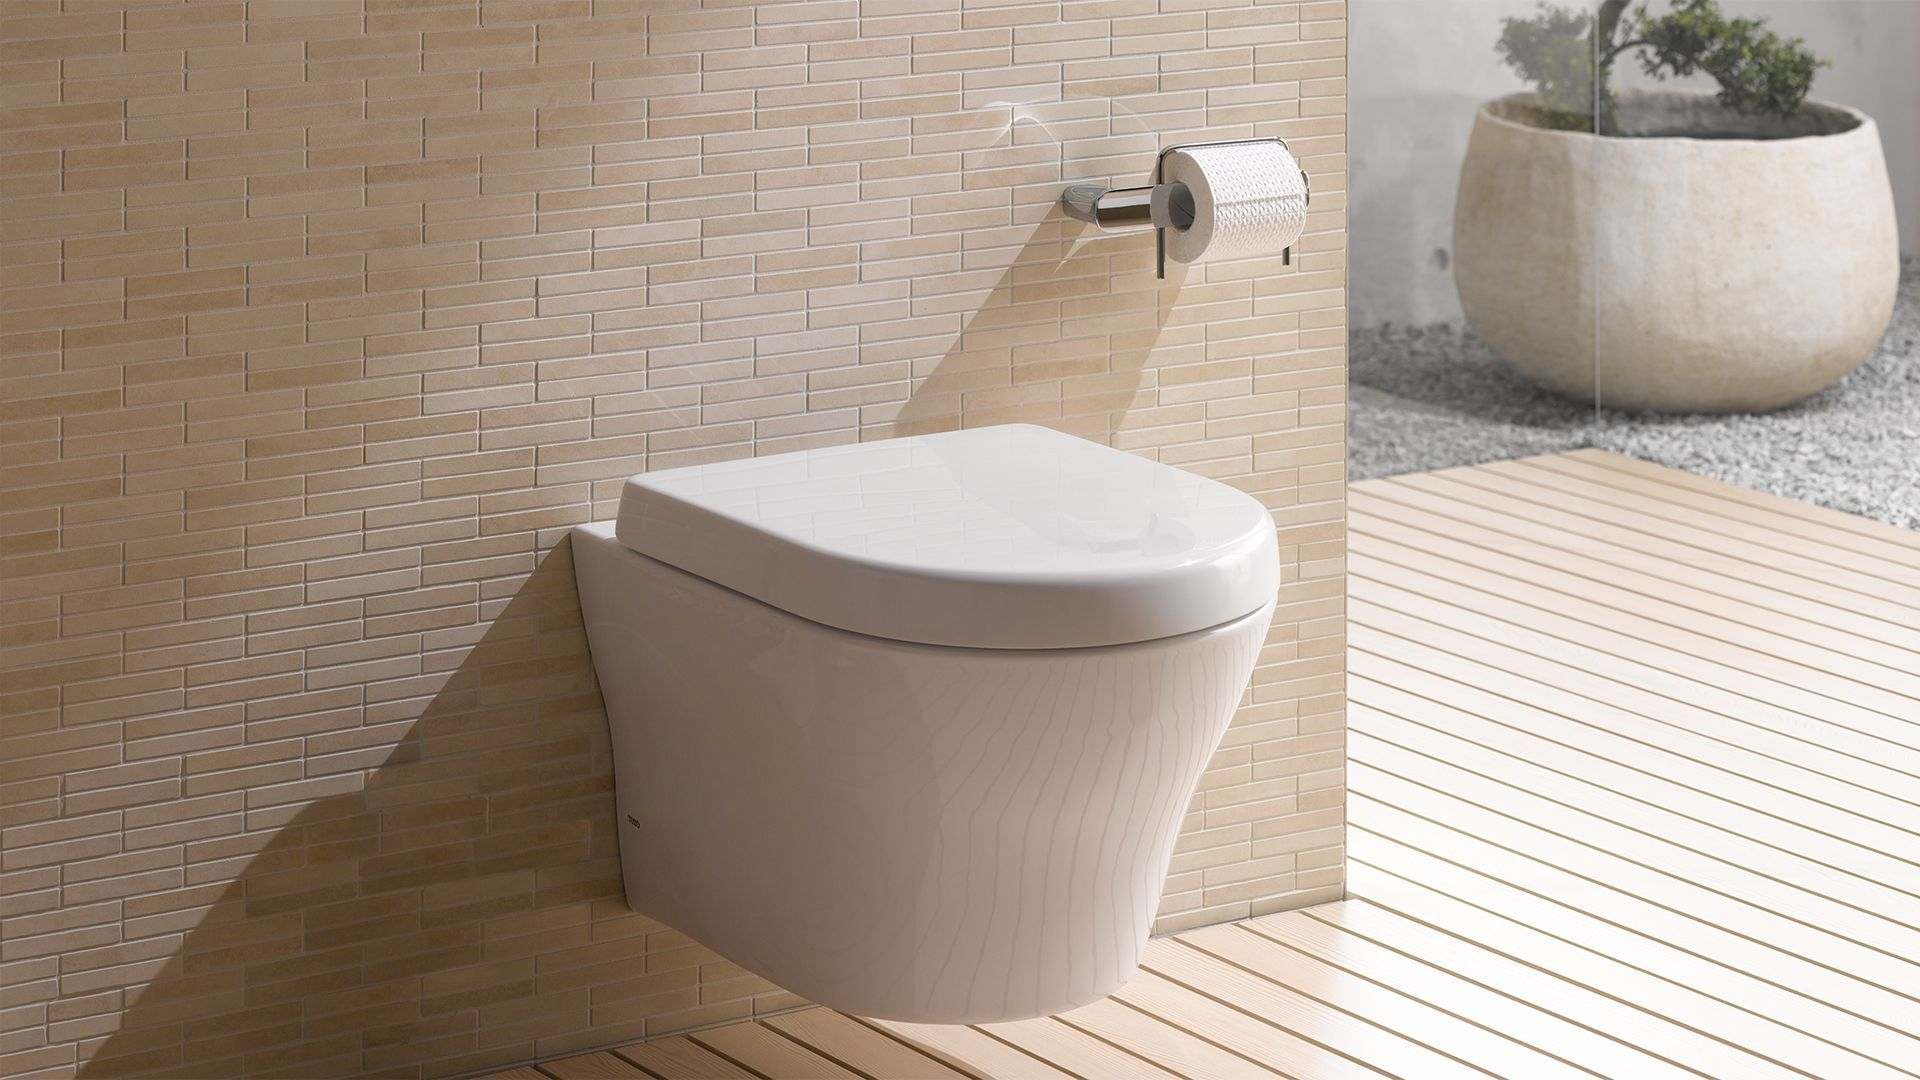 This Sleek And European Design Wall Hung Toilet Offers An D Shaped Bowl And Skirted Design Along With Our Pow Wall Hung Toilet Wall Mounted Toilet Toto Toilet